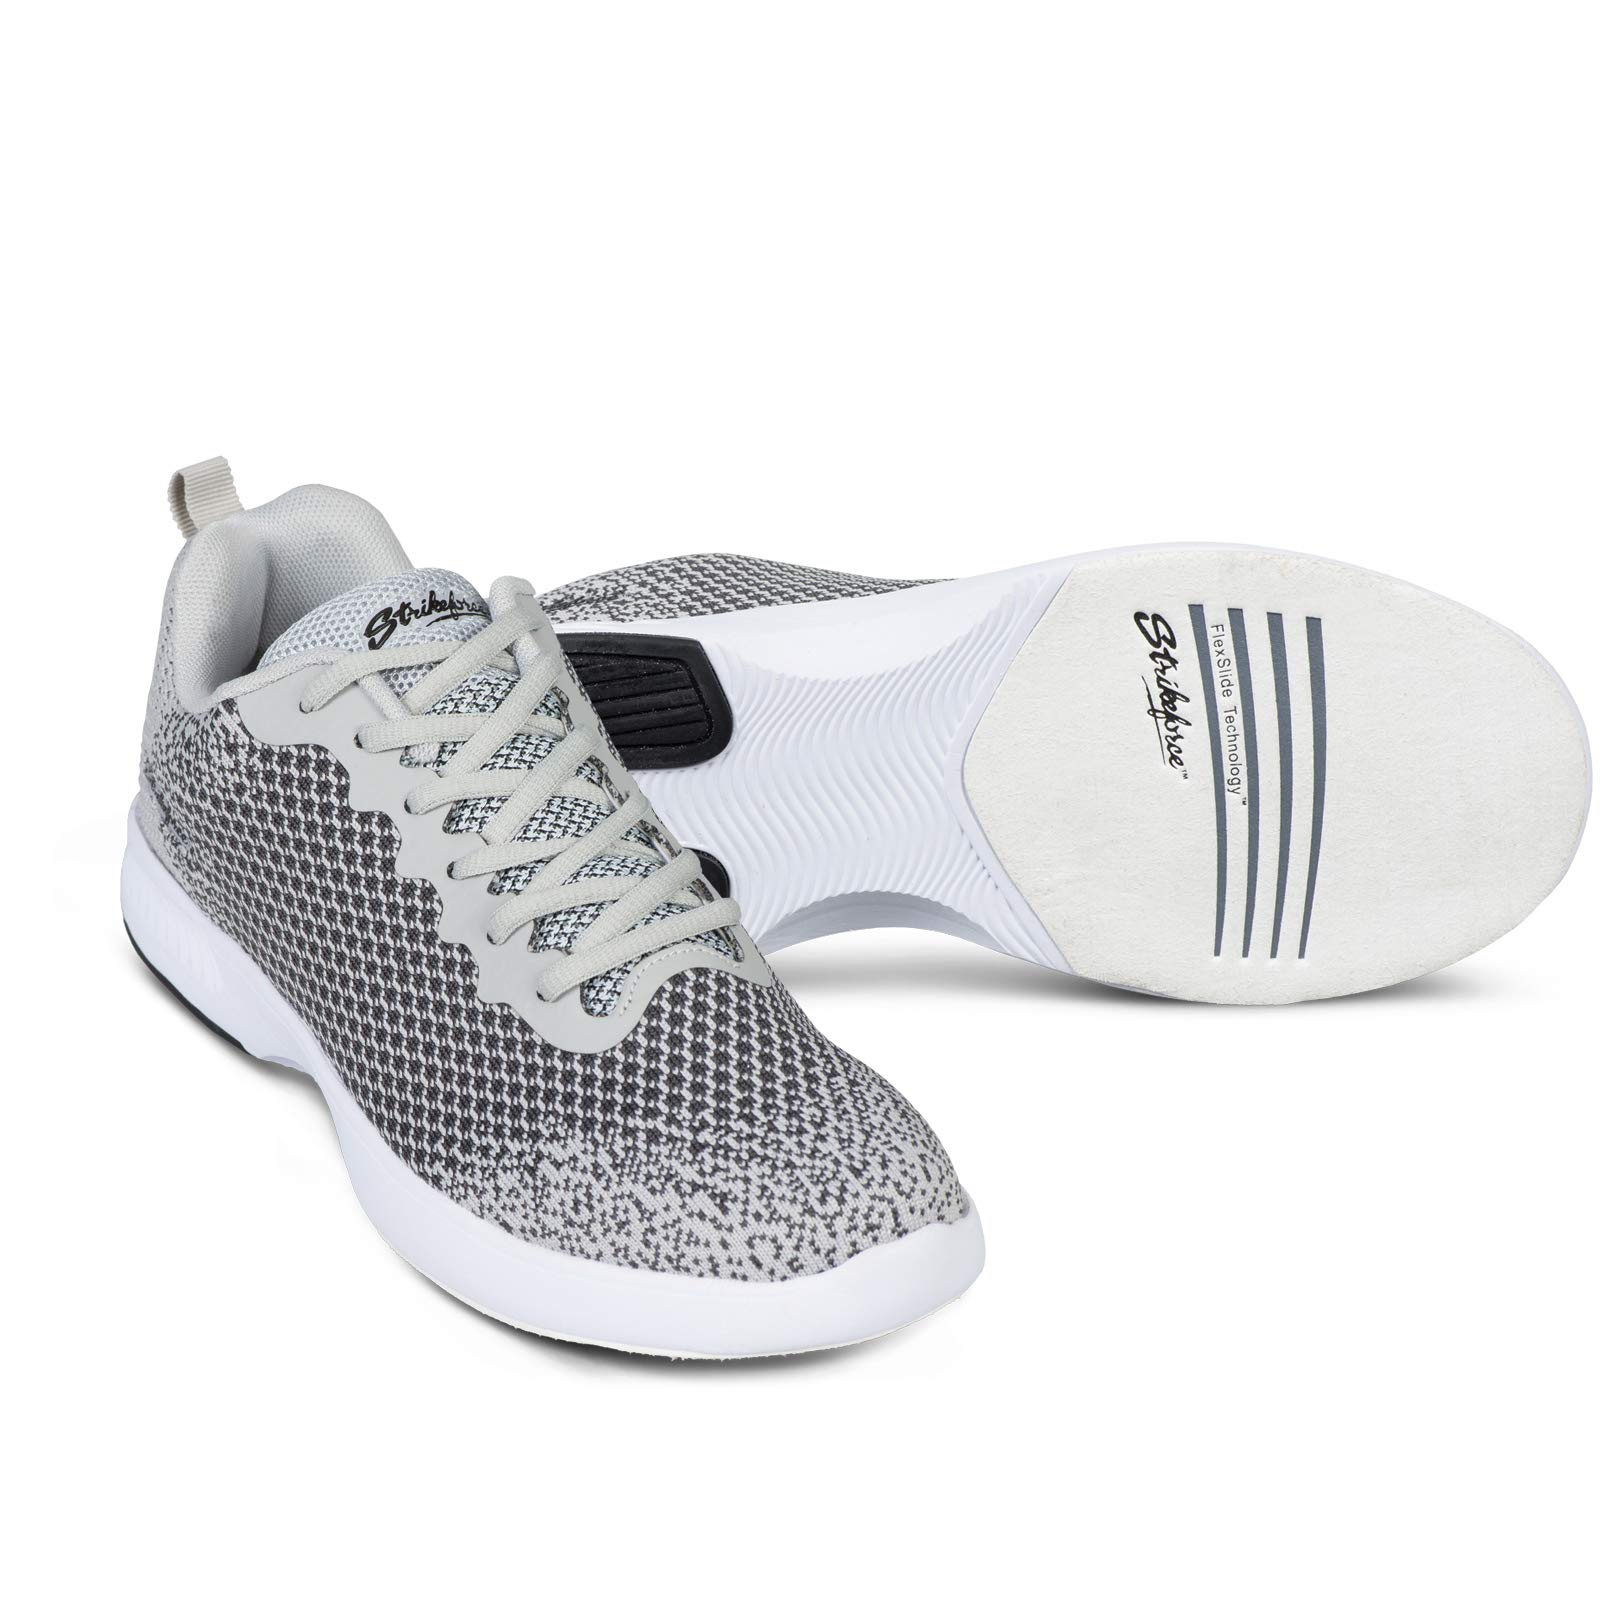 KR Aviator Mens Grey Size 7 by KR Strikeforce